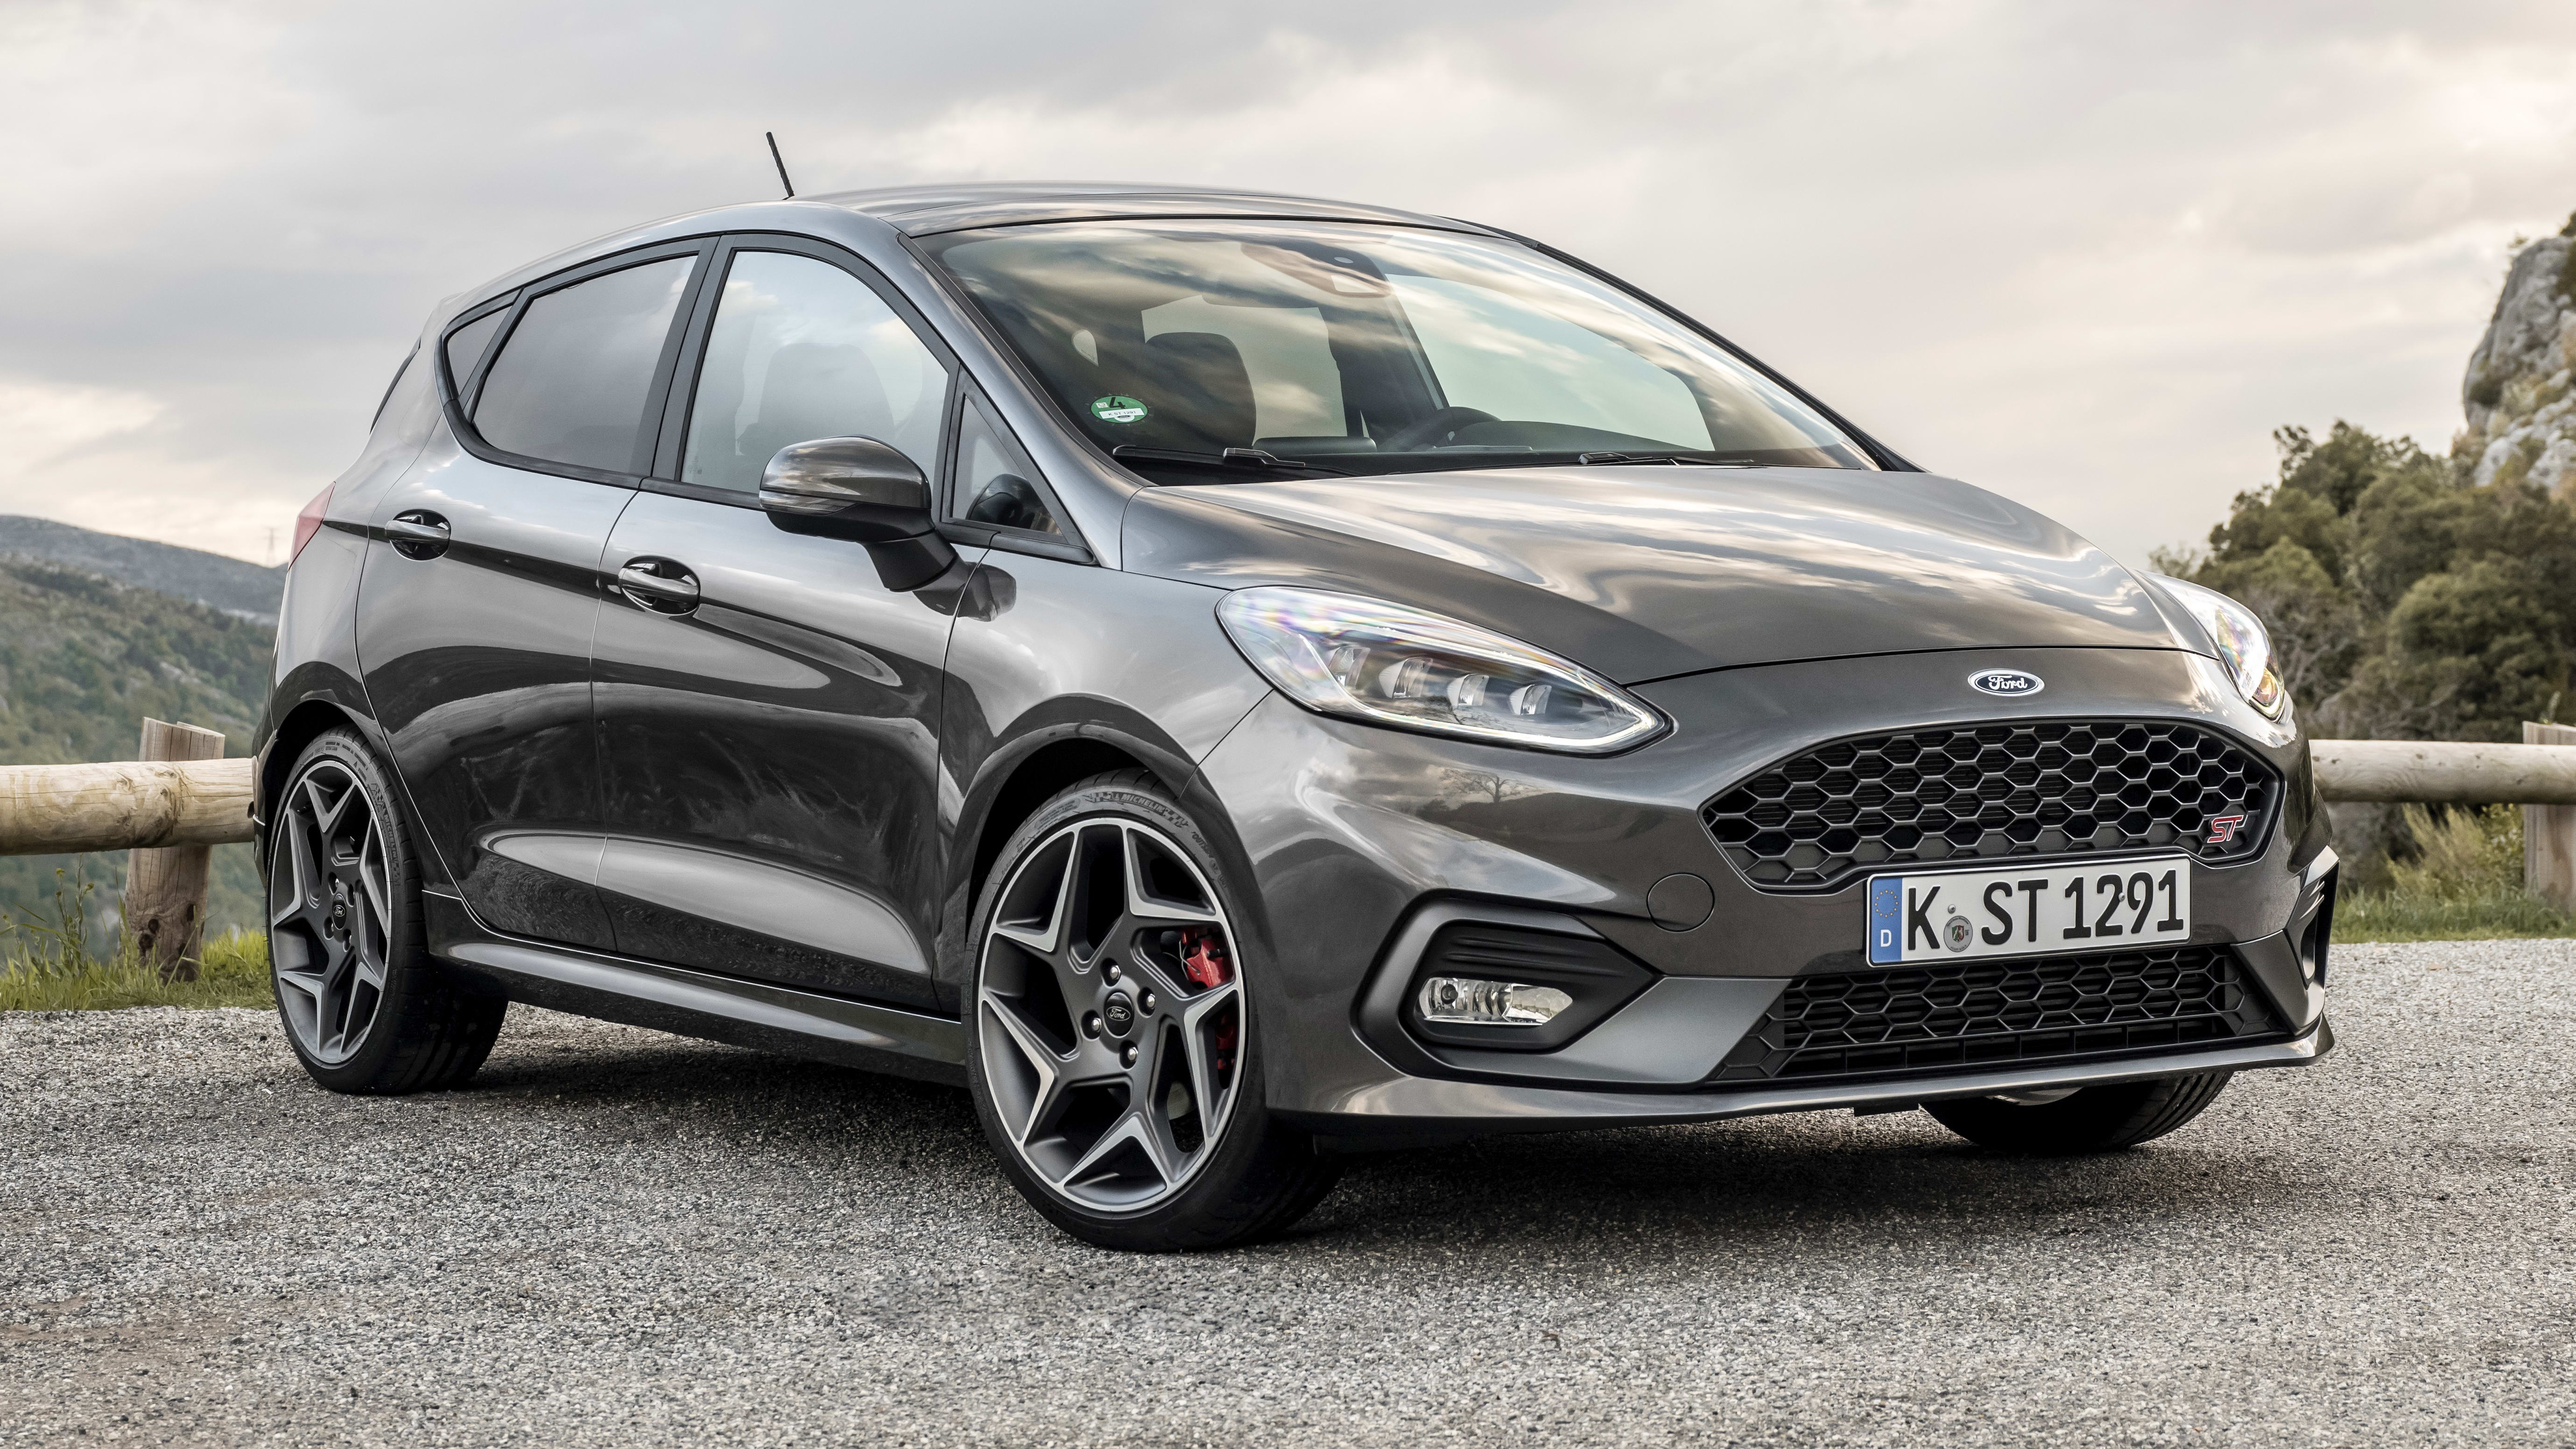 2020 Ford Fiesta St Pricing And Specs Caradvice